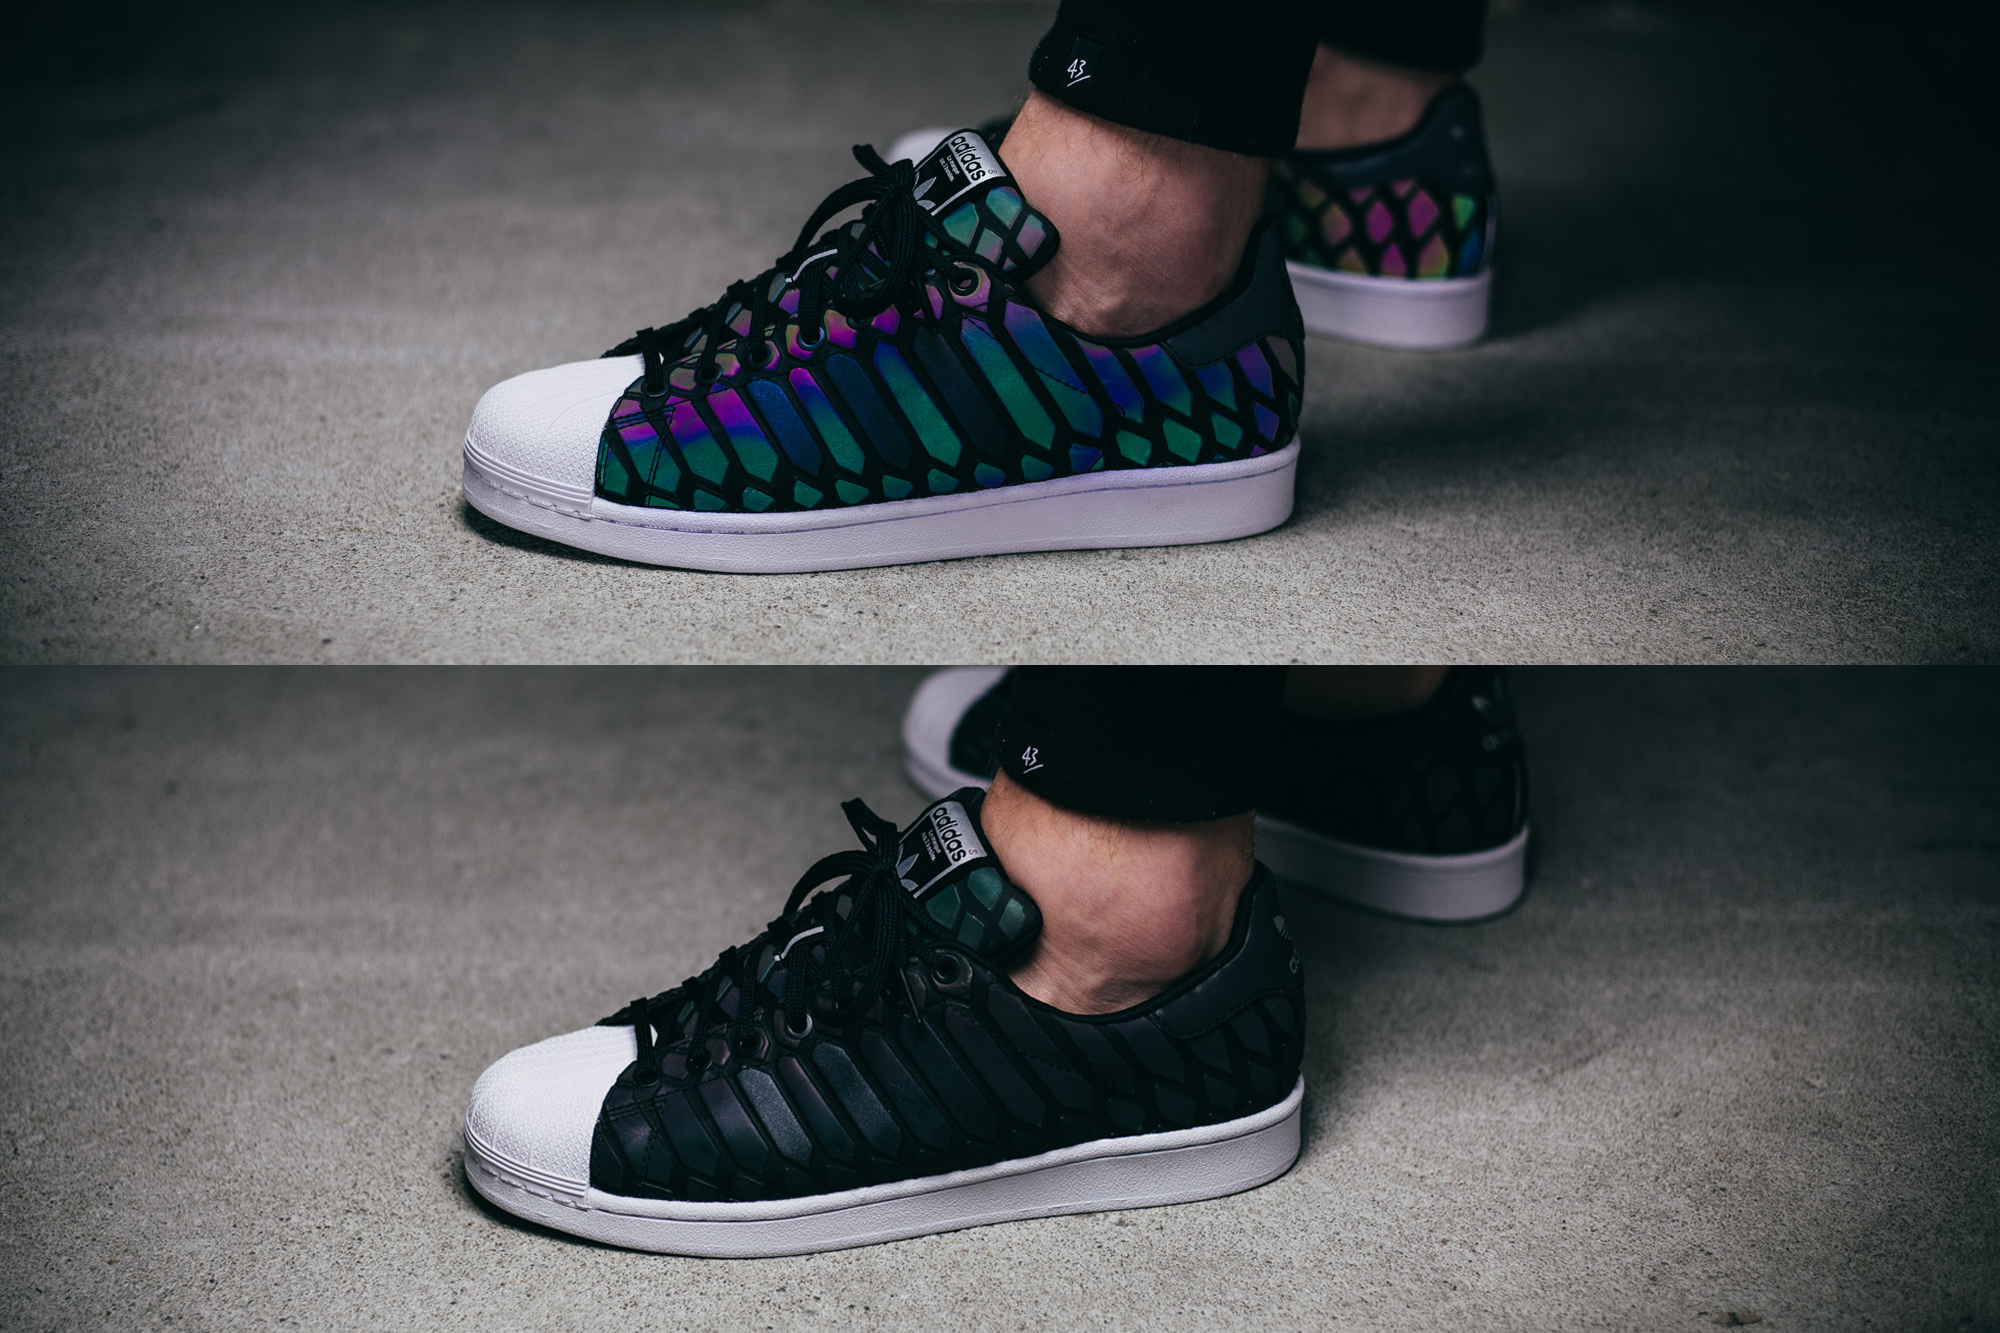 Adidas Superstar Adidas Originals Originals Superstar Superstar Xeno Adidas Originals Xeno w8nmN0